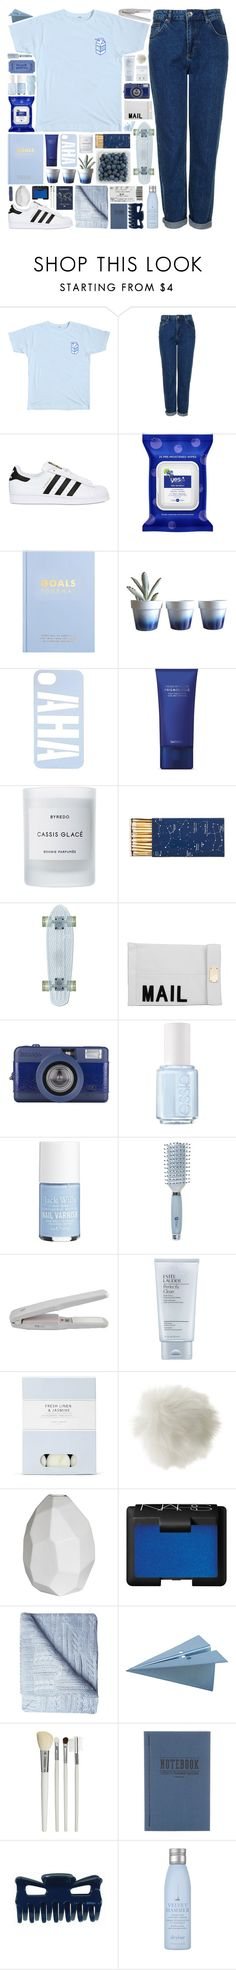 """""""ON MY OWN"""" by doubting ❤ liked on Polyvore featuring Topshop, adidas Originals, kikki.K, Dot & Bo, Byredo, Jayson Home, Akira, Essie, Jack Wills and Goody"""